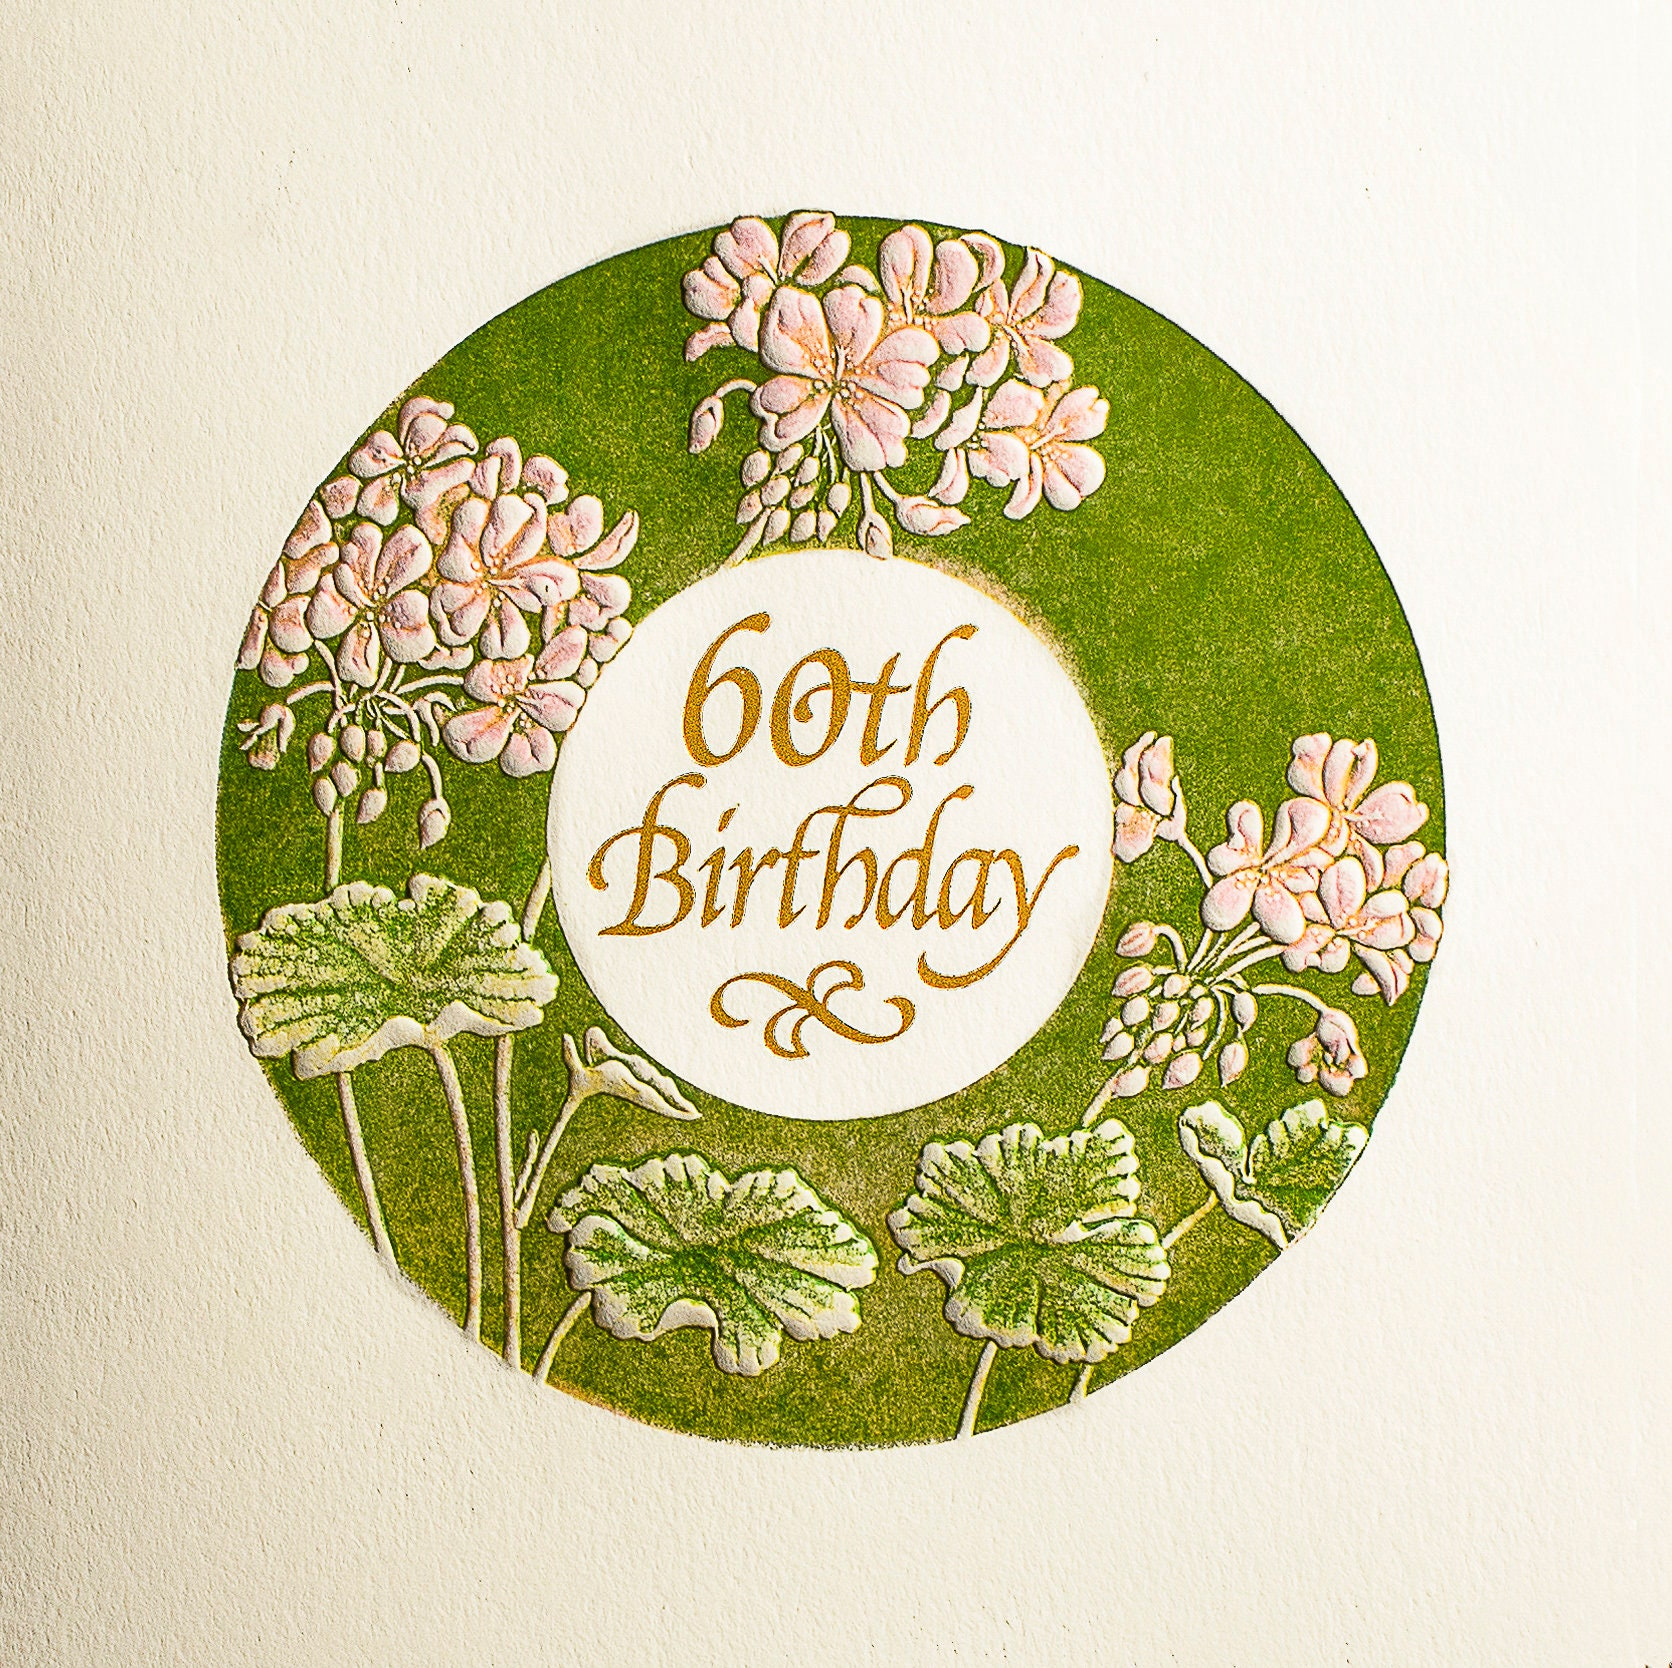 60th Birthday Card Happy Gold Foil Bday Single Blank Inside